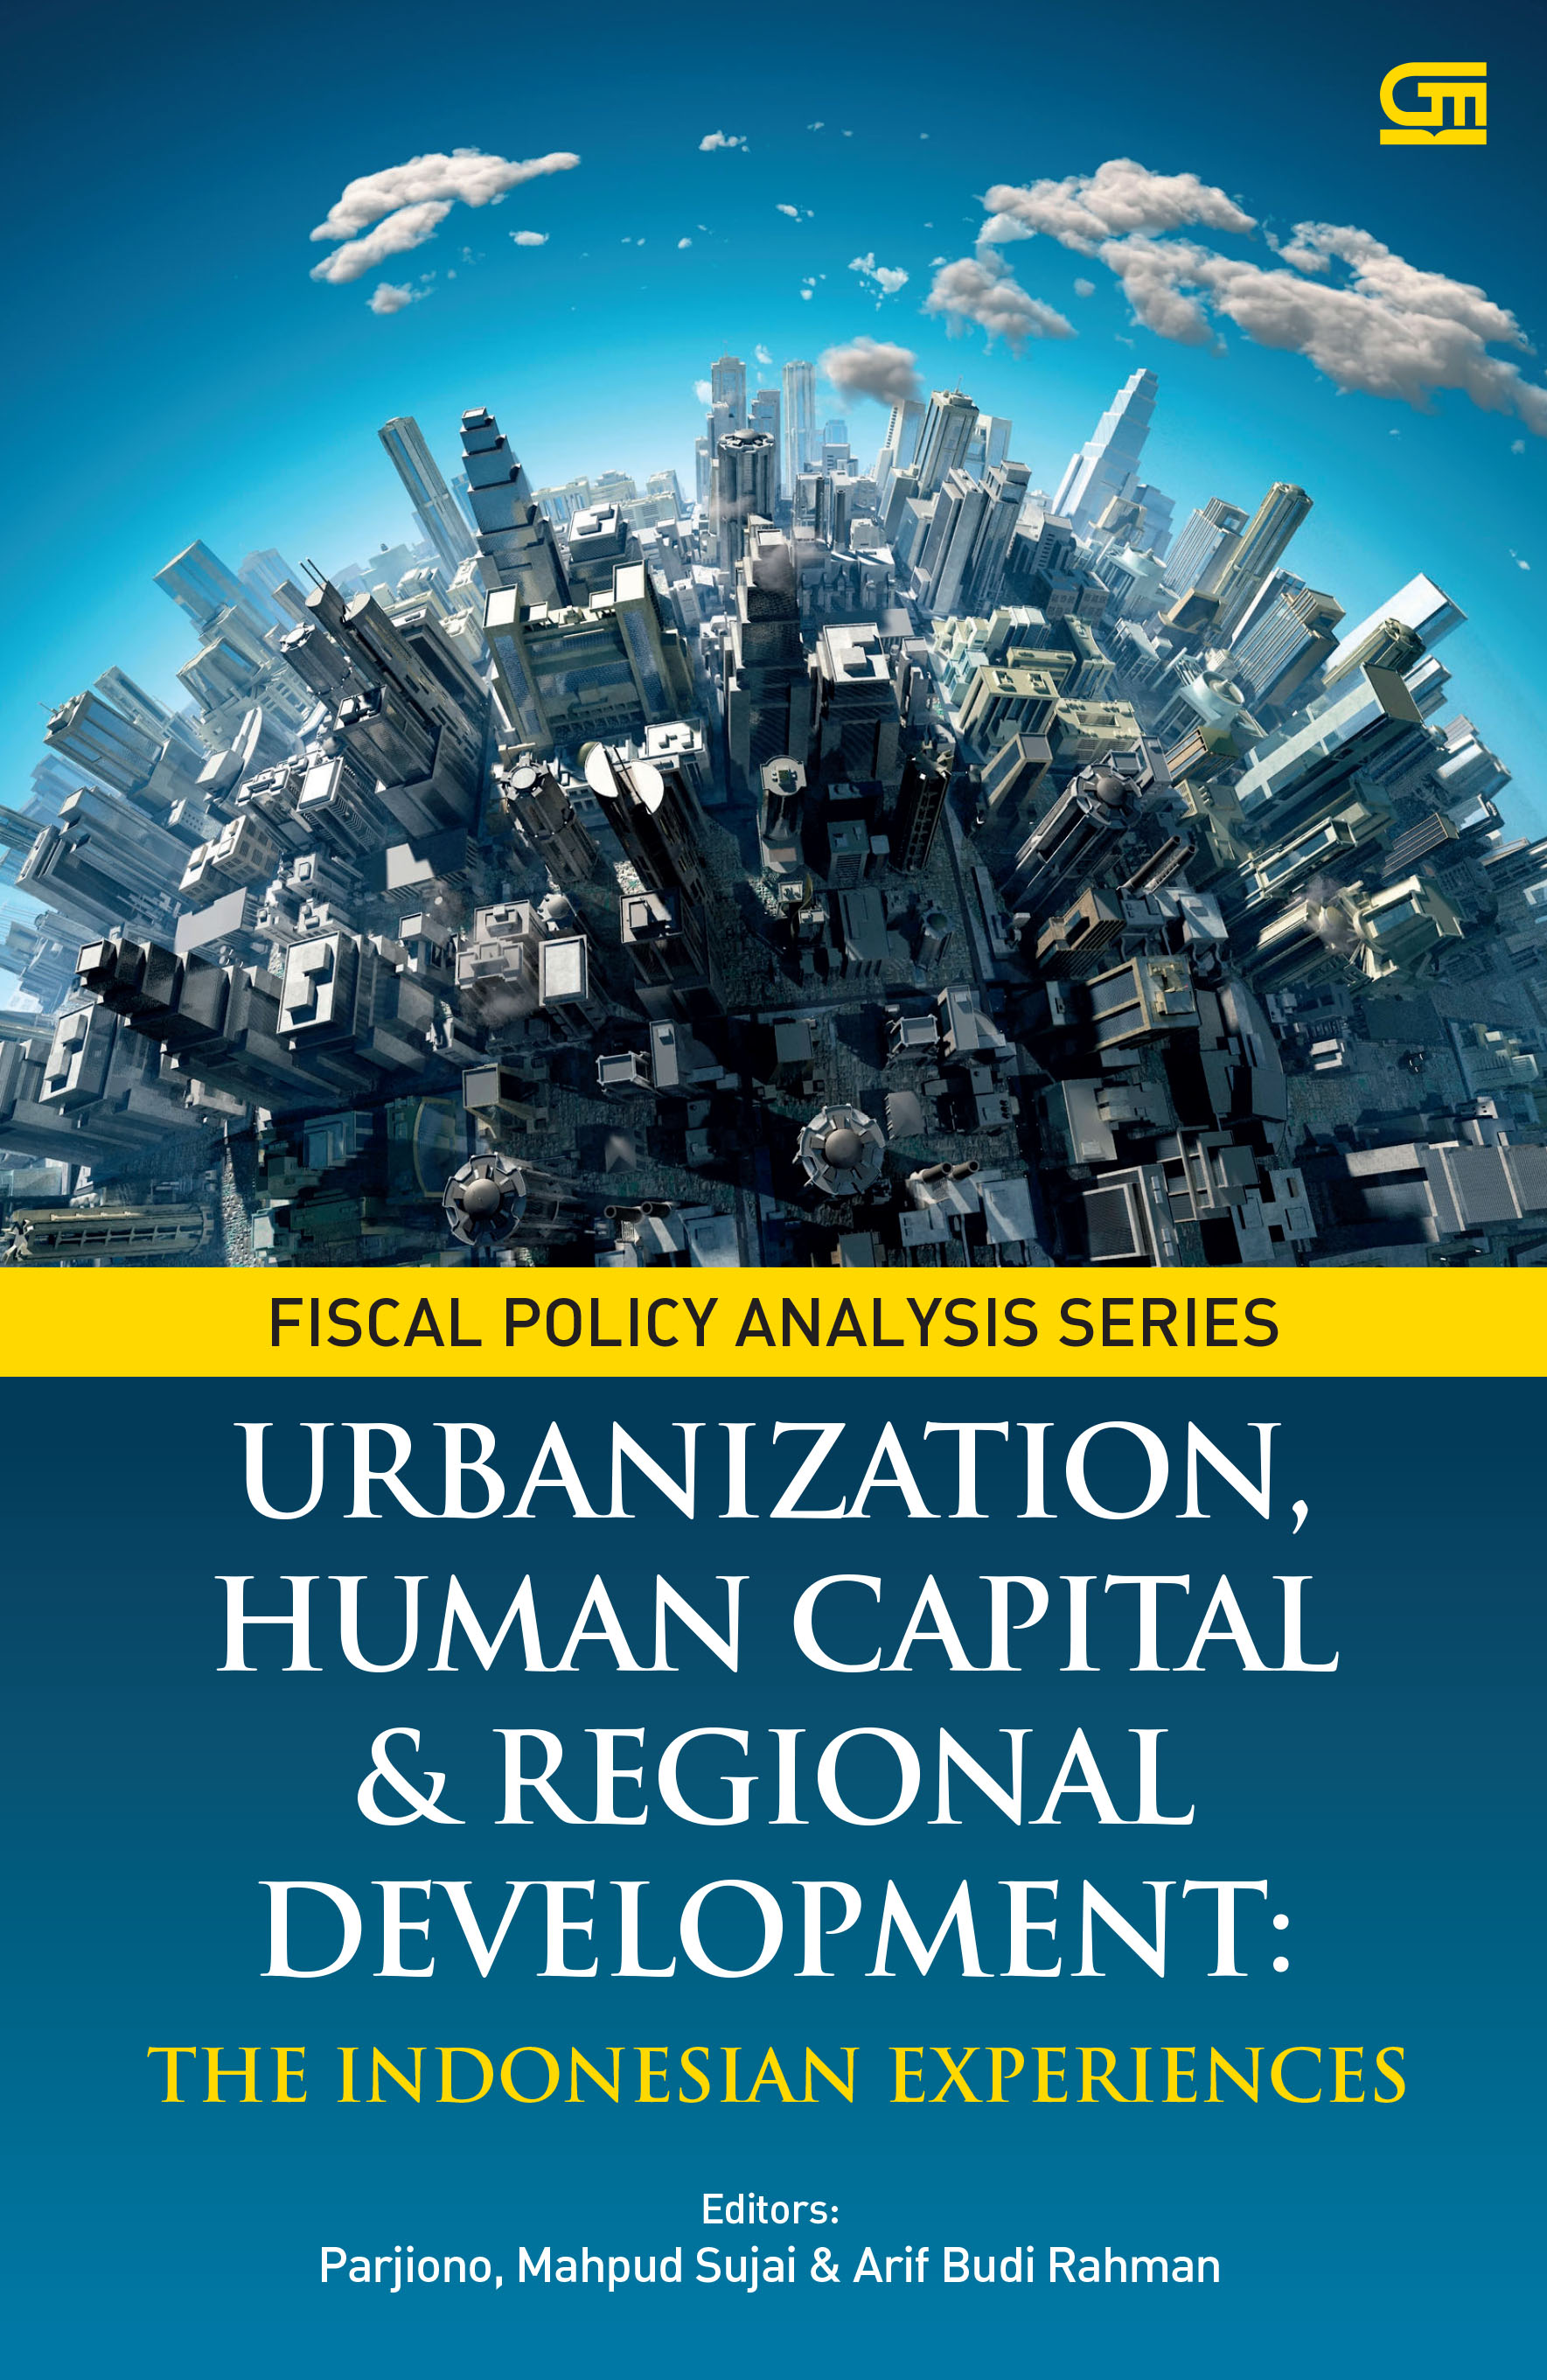 Urbanization, Human Capital, & Regional Development The Indonesian Experiences